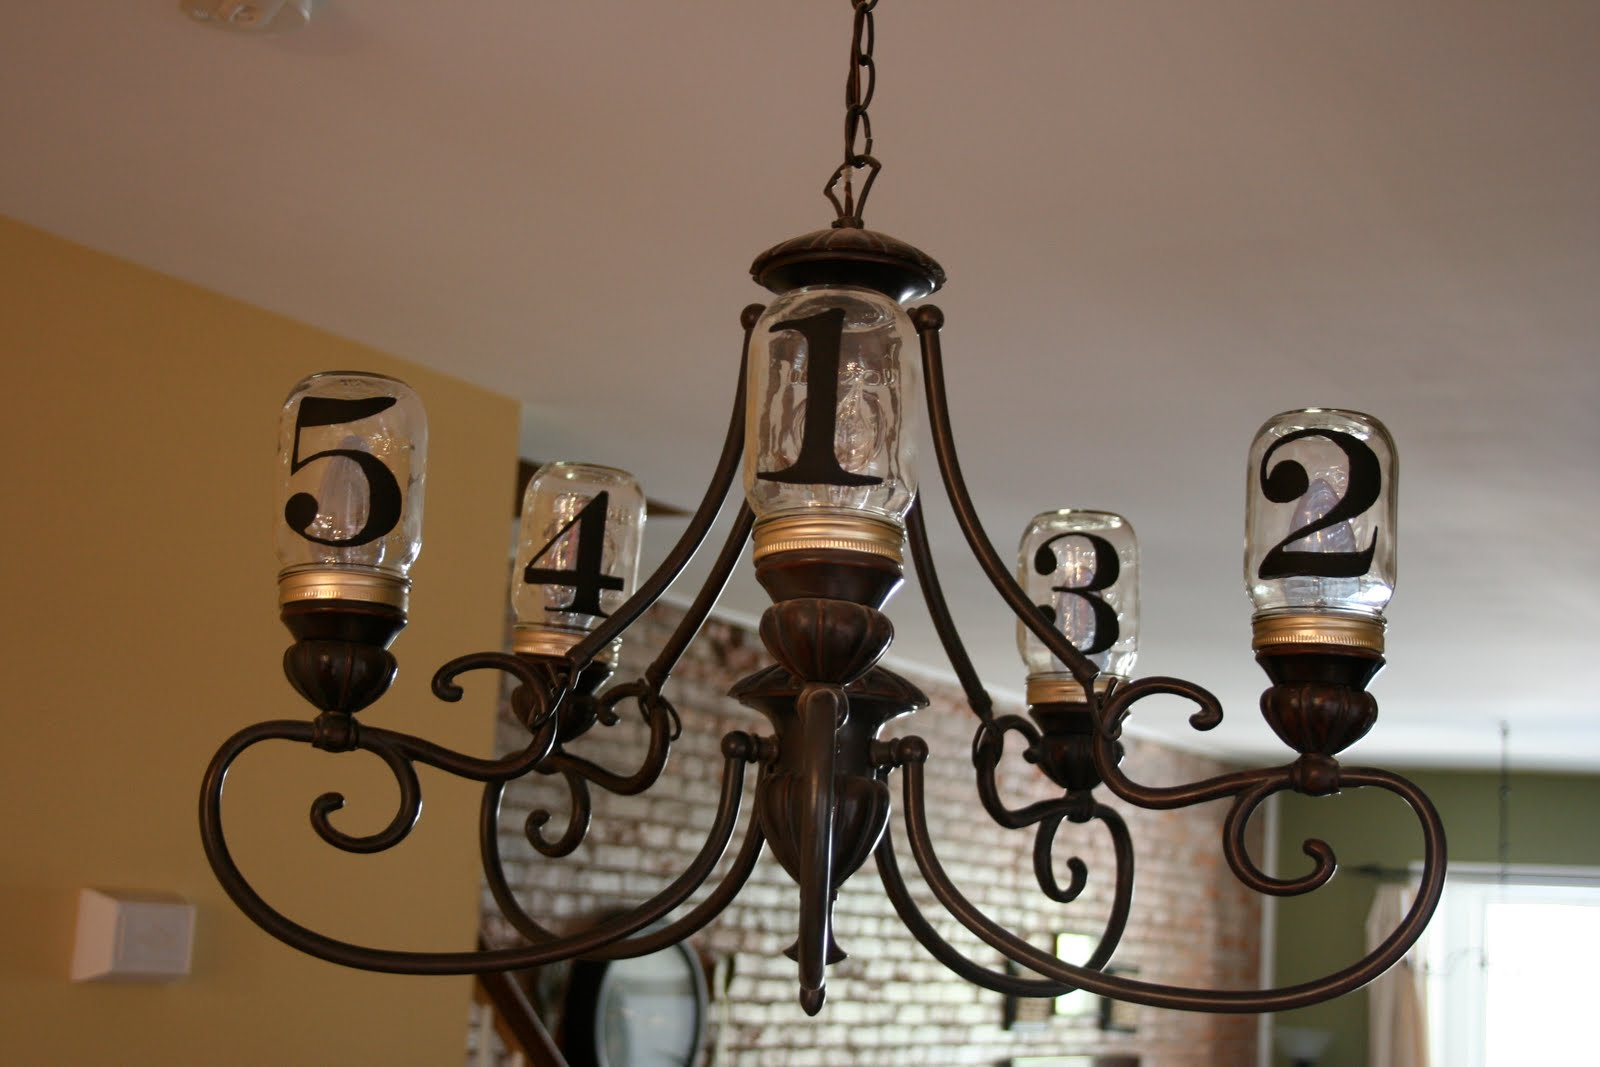 jar lighting fixtures. Jar Lighting Fixtures R